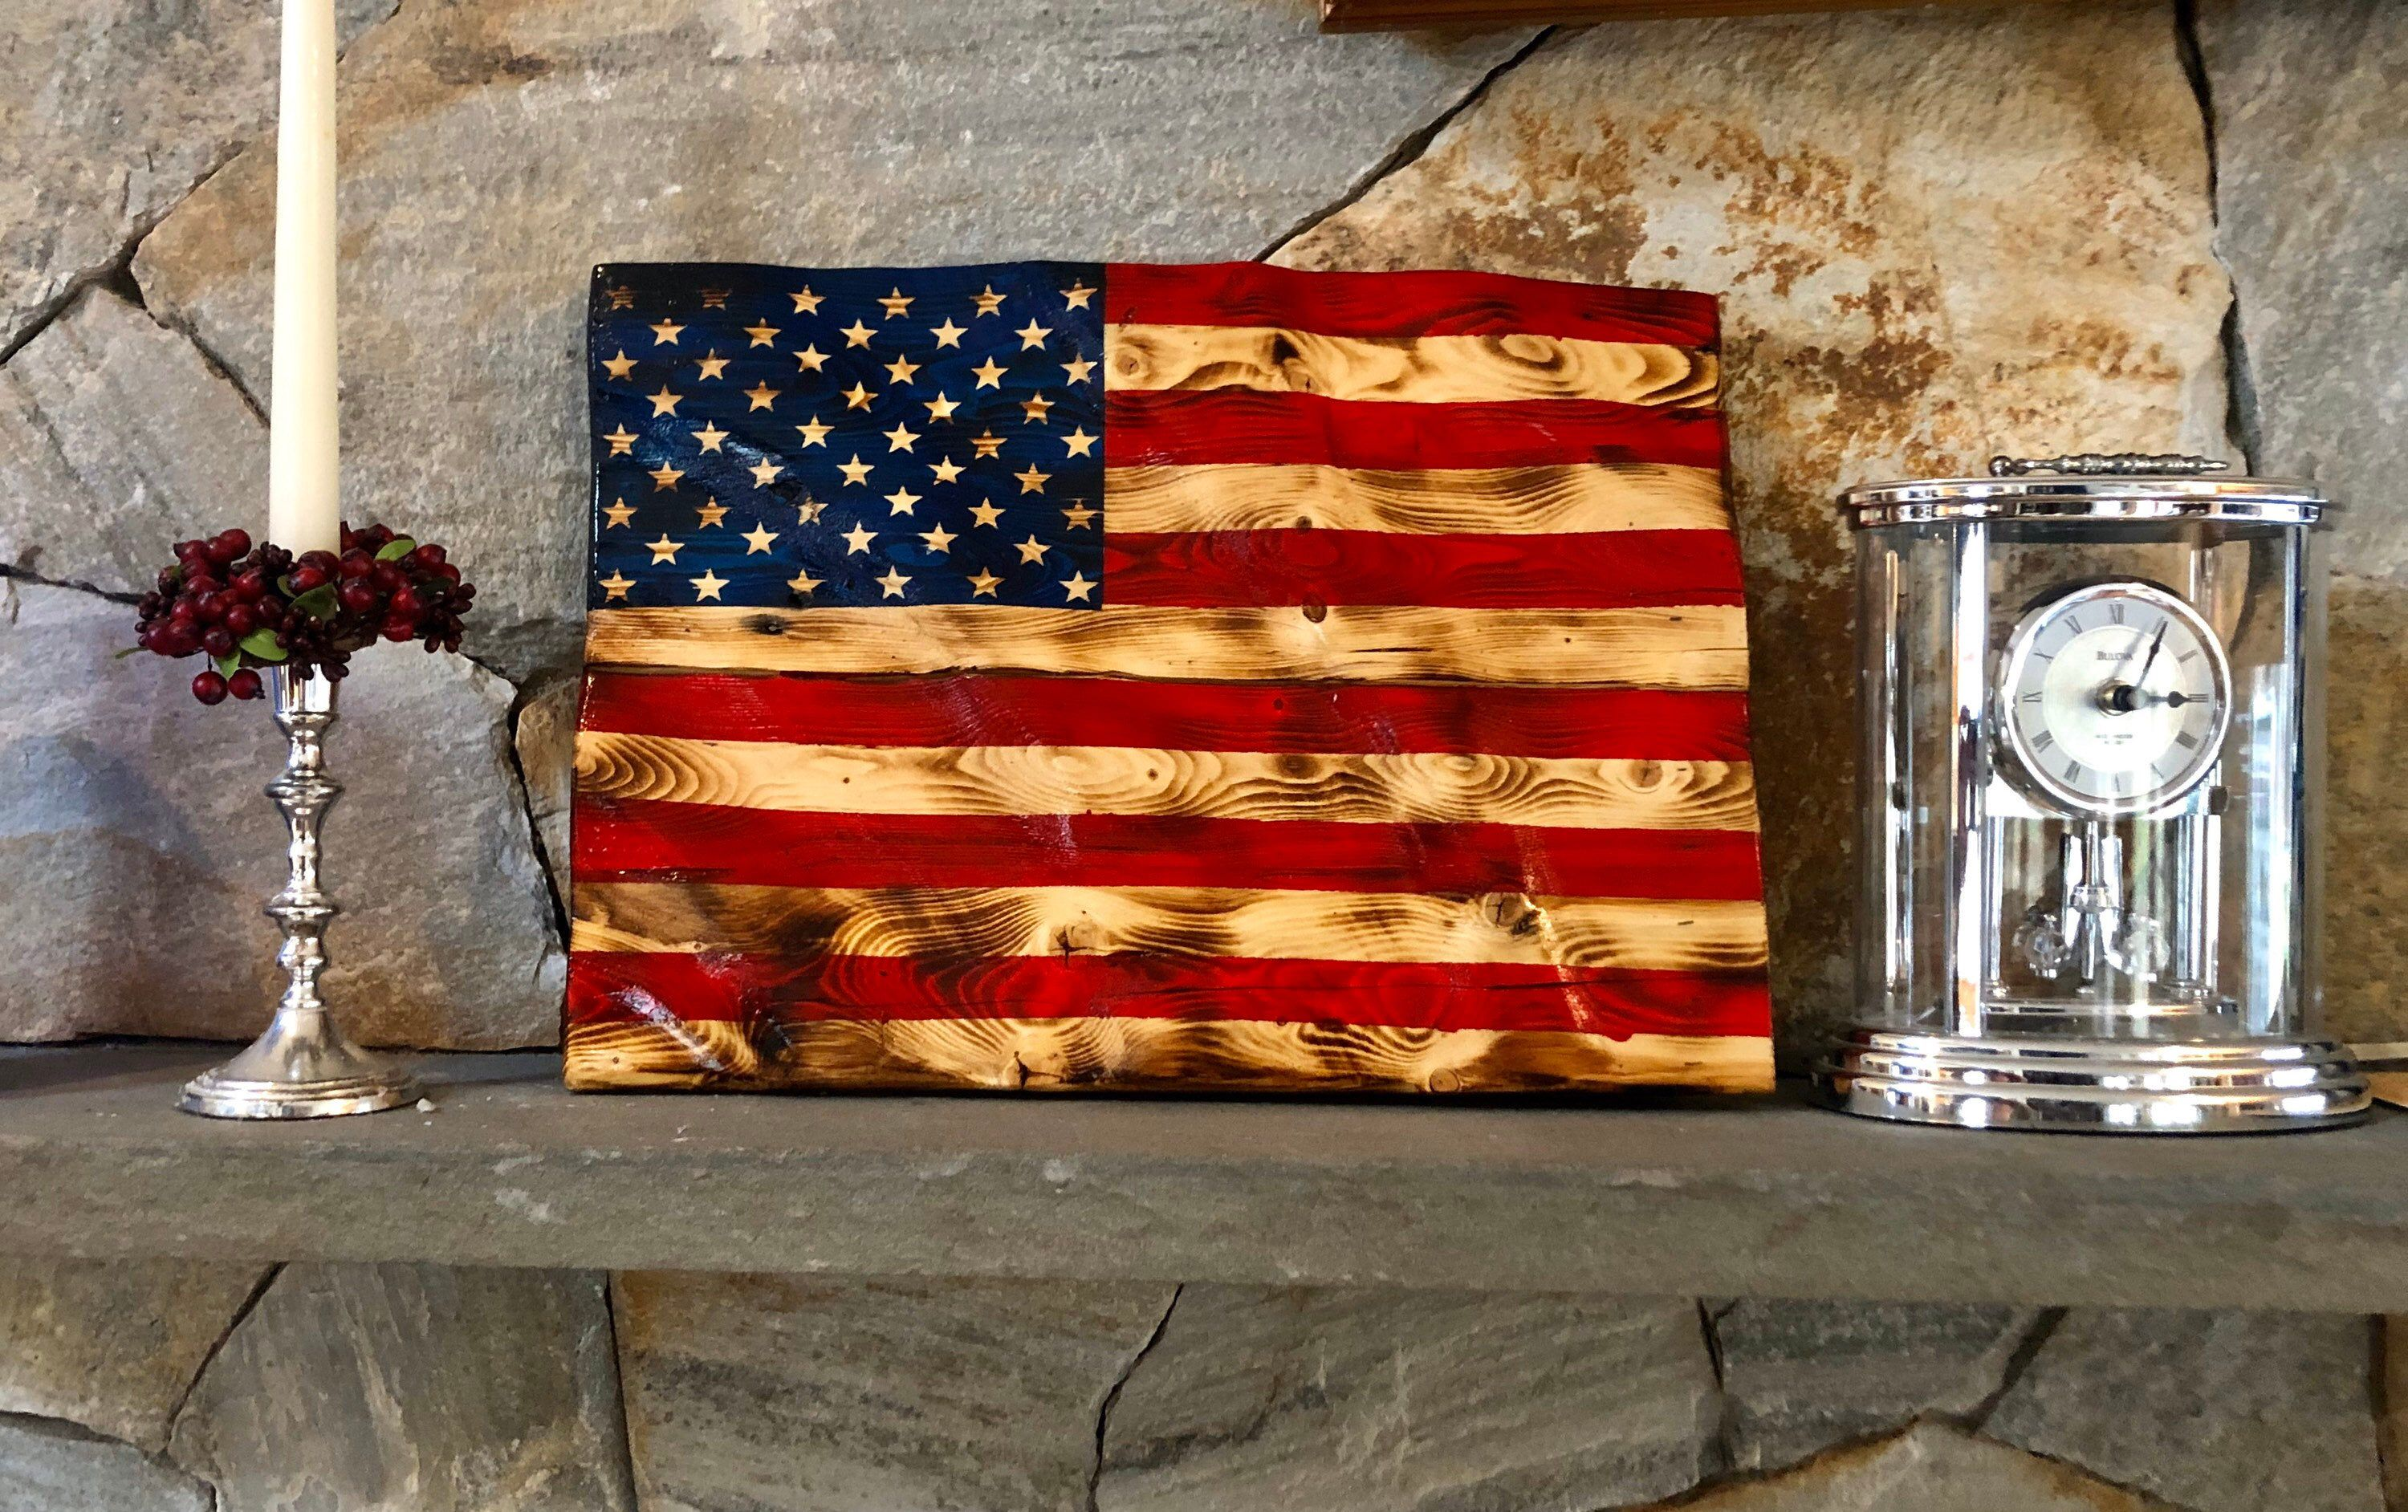 Wooden American Flag Wall Hanging Waving Wooden Flag Design Waving Stars And Stripes In 2020 Wooden American Flag American Flag Wall Hanging Wooden Flag